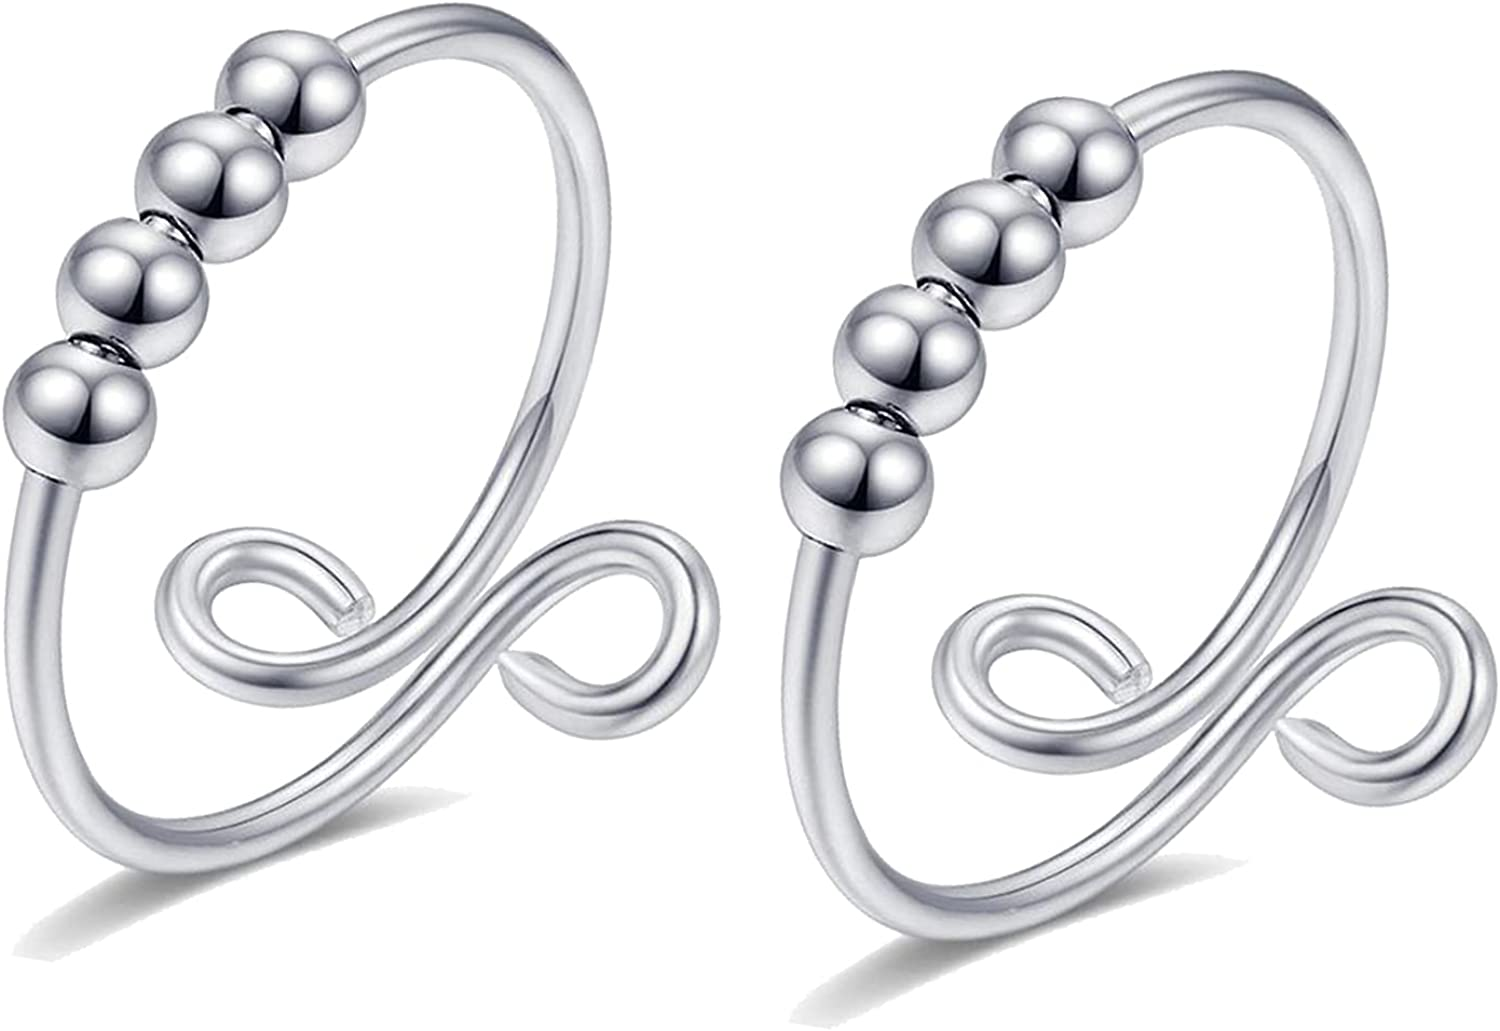 Anxiety Rings With Beads Fidget Spinning Rings for Women Worry Anxiety Beads Rings for Men